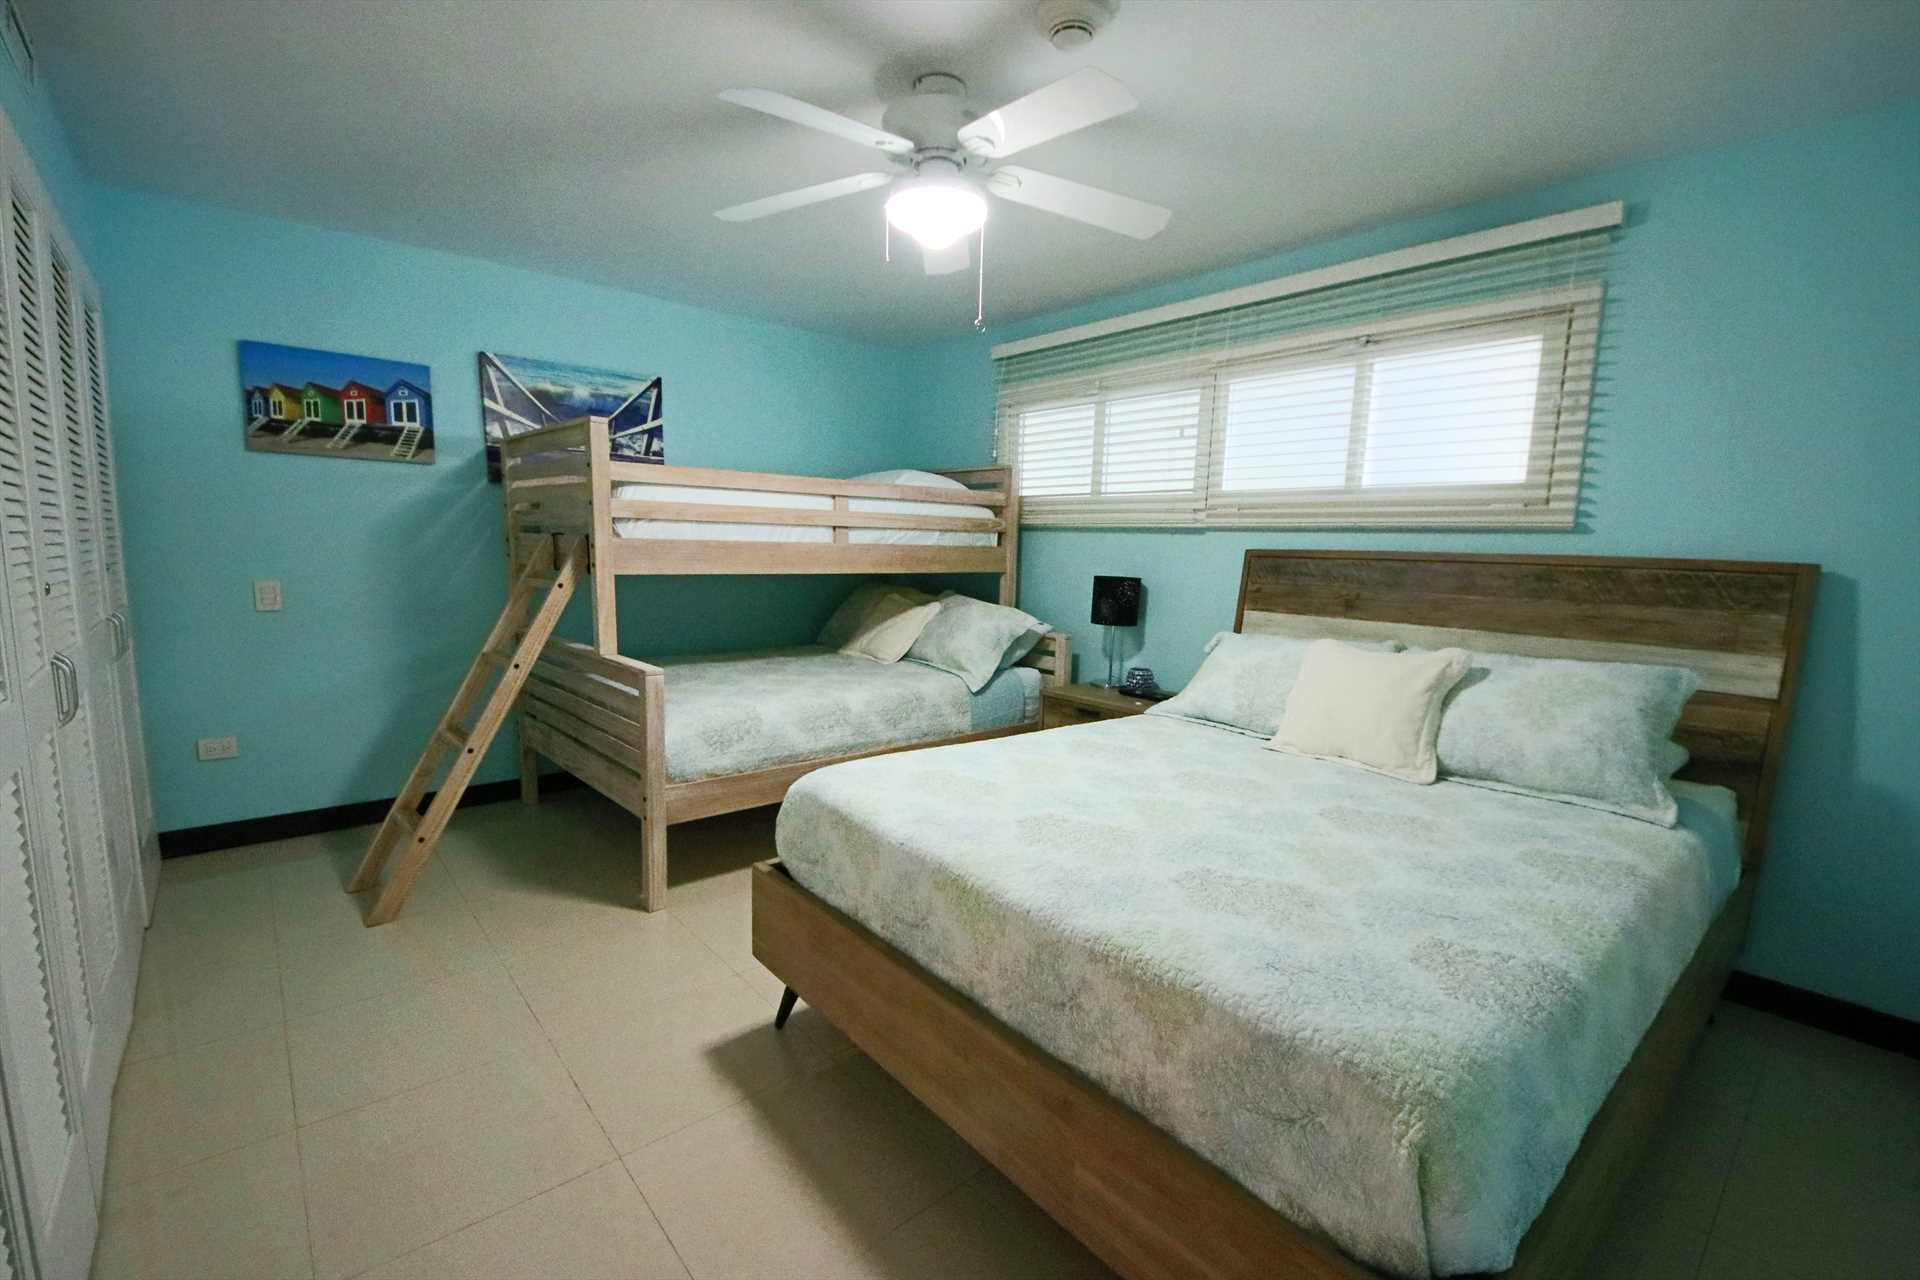 Second bedroom with a queen-size bed and a bunk bed (full-size and twin-size)